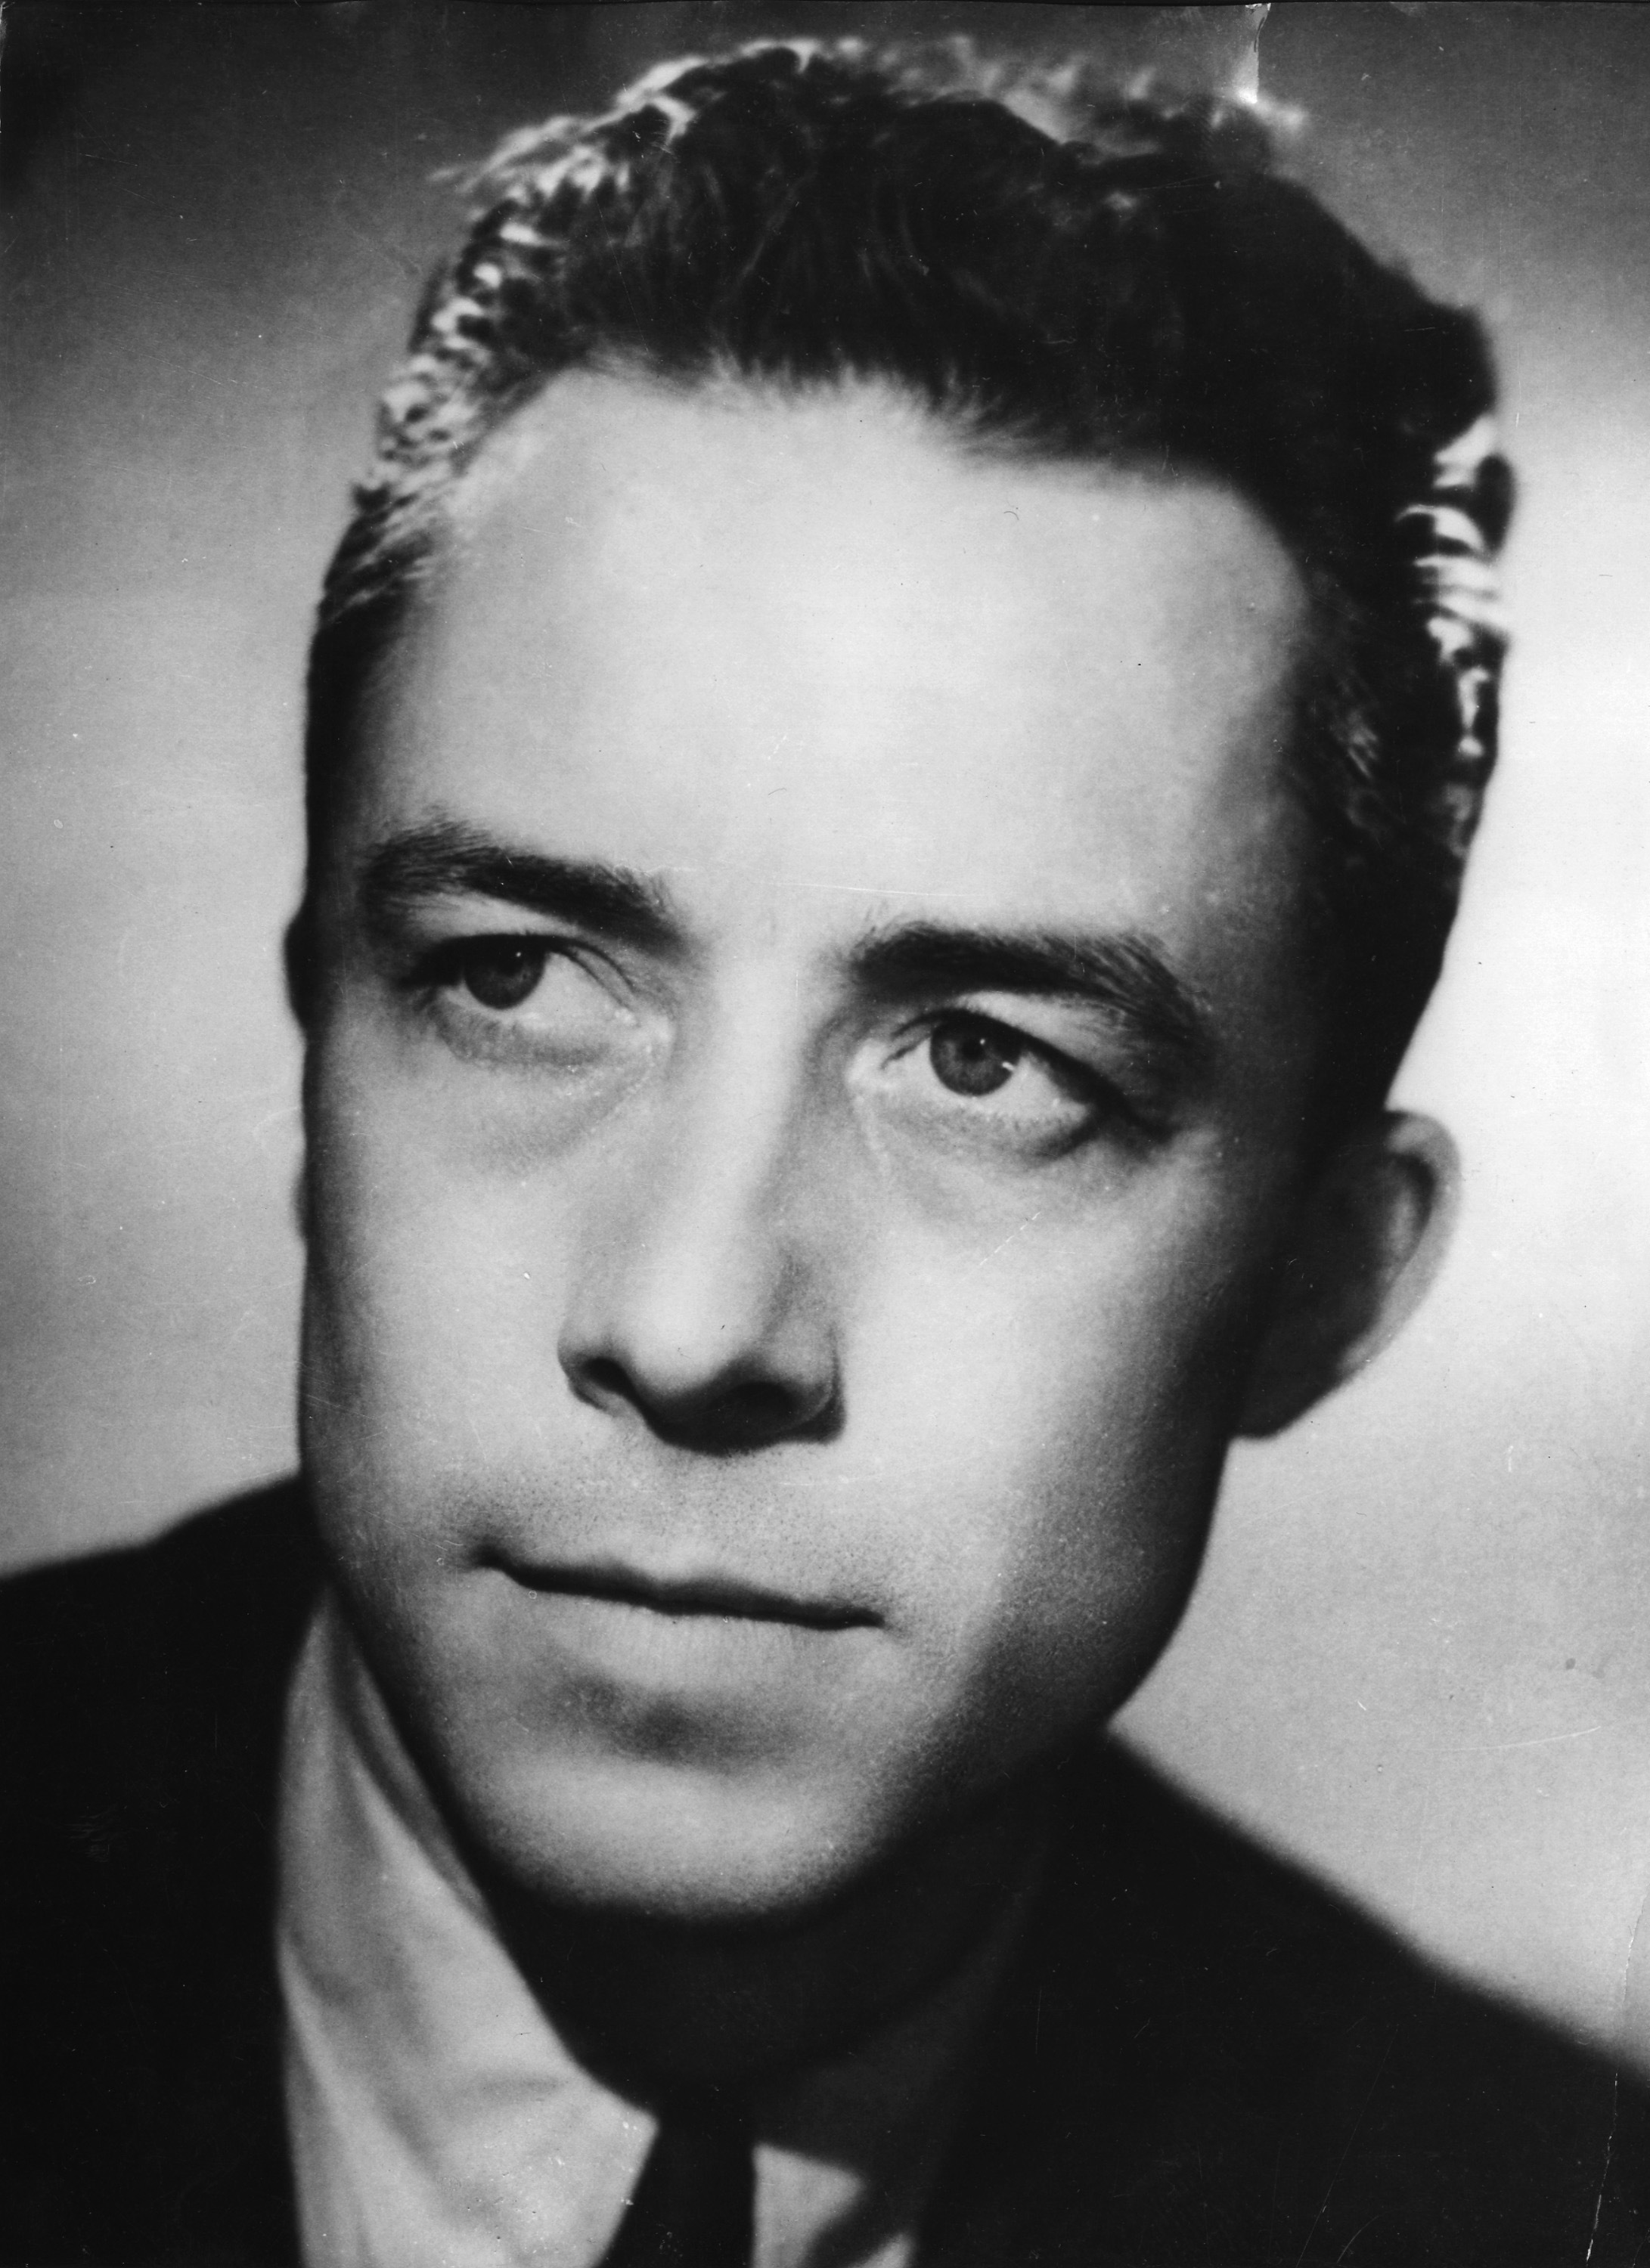 Albert Camus, 1913-1960, won the Nobel Prize for Literature in 1957.